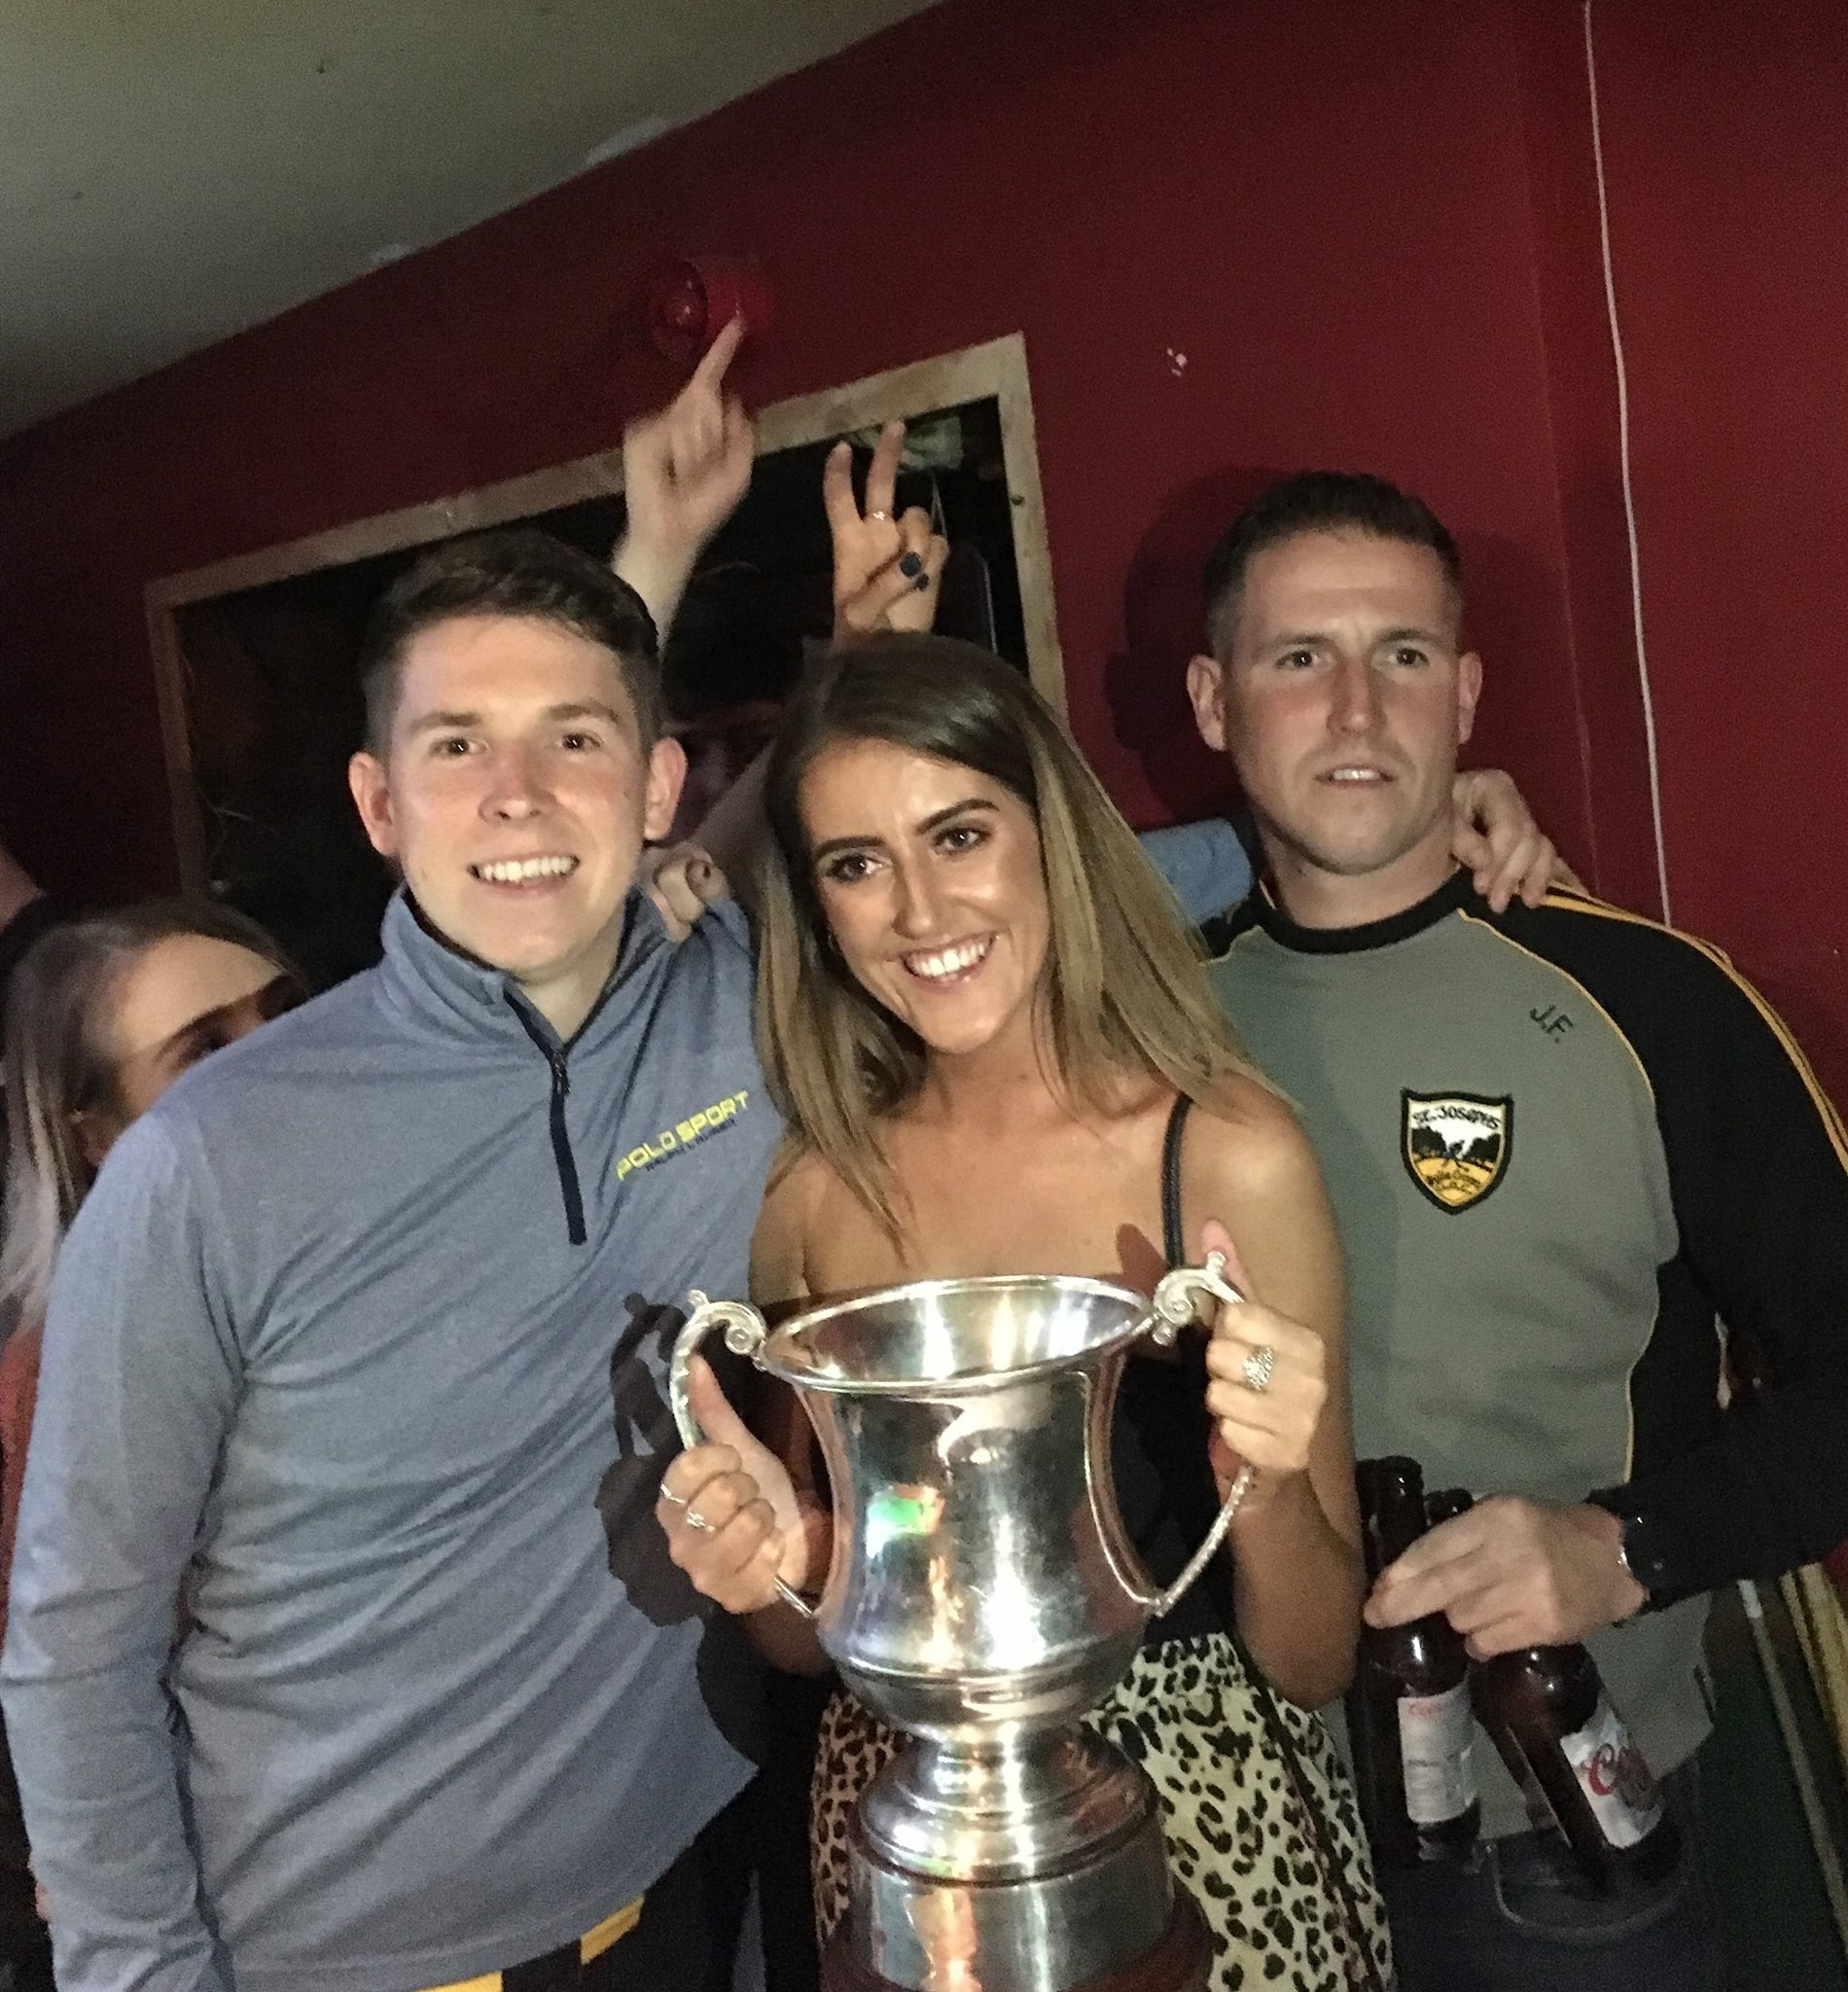 Ballycran's Clíona Fowler talks about her new life away from Glastry